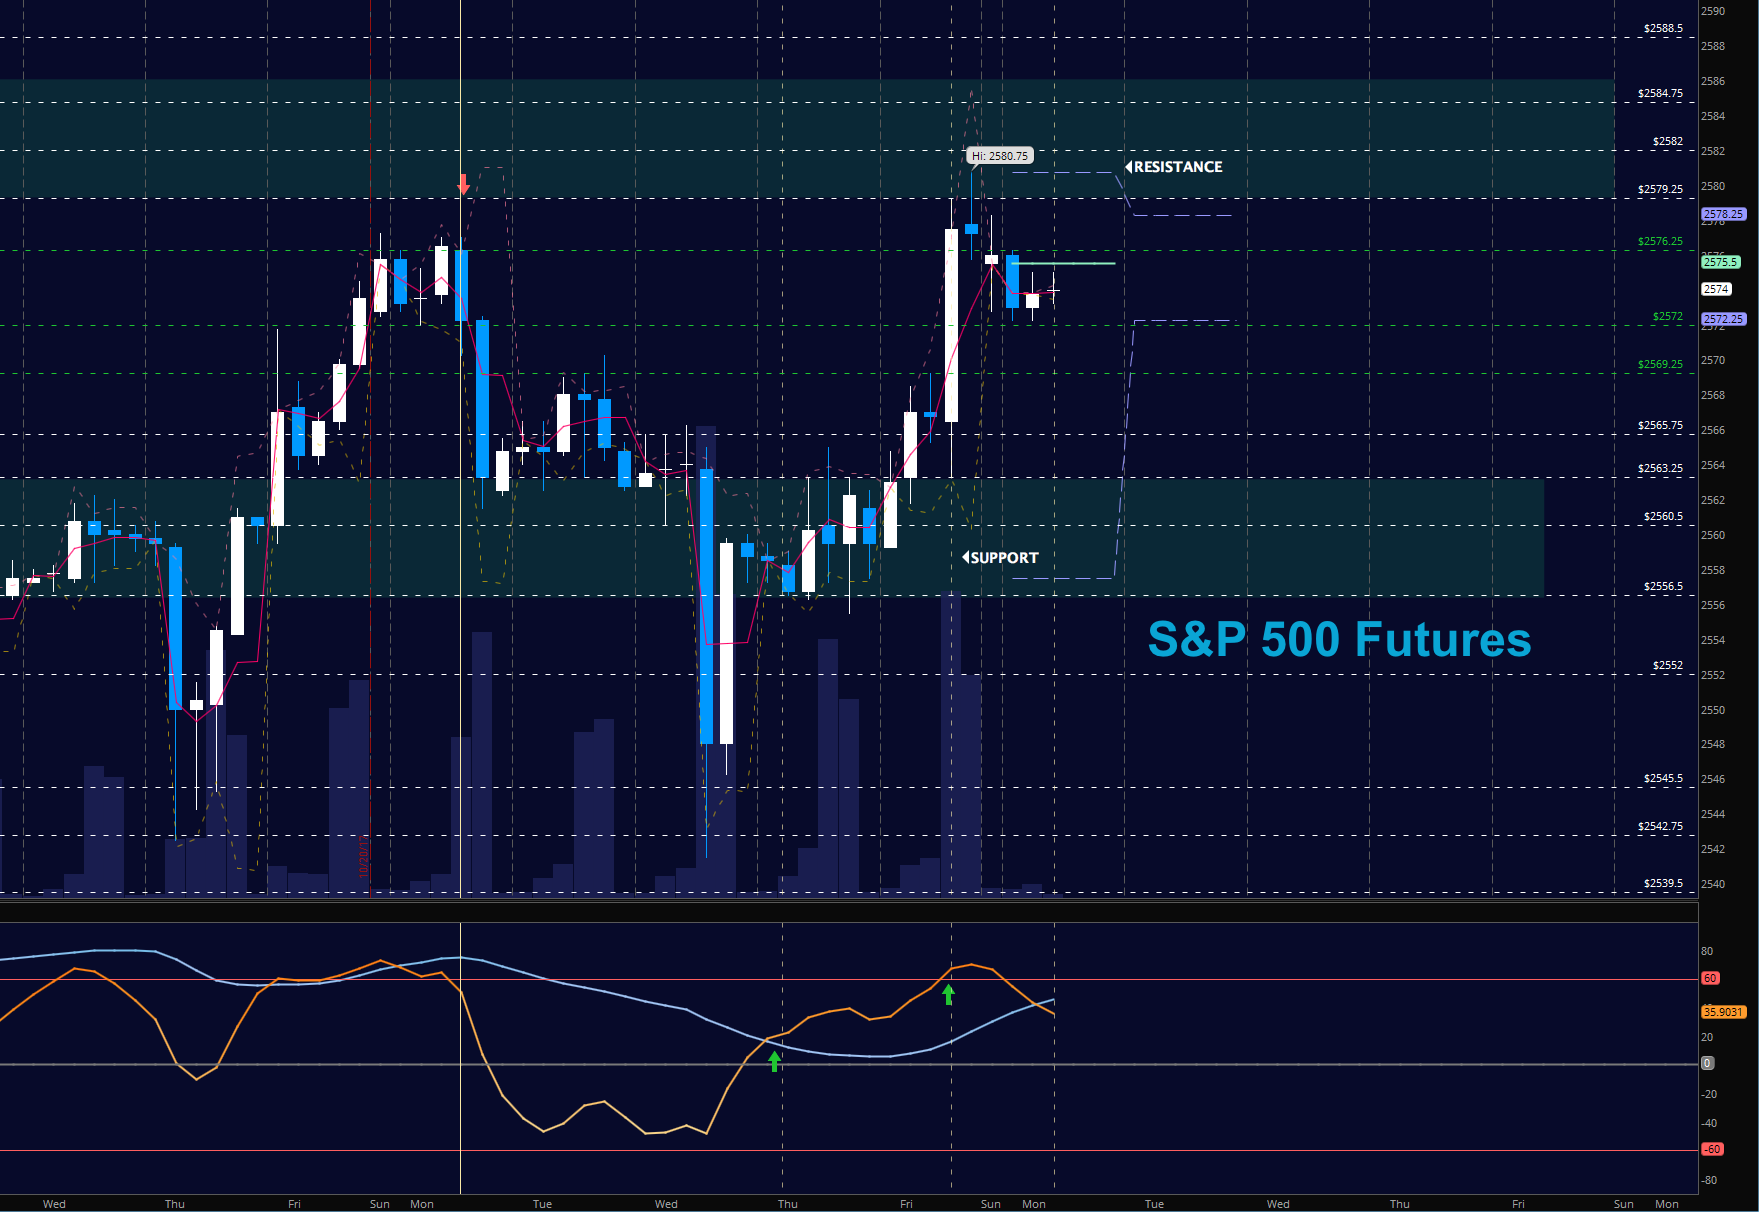 Stock index futures trading strategy